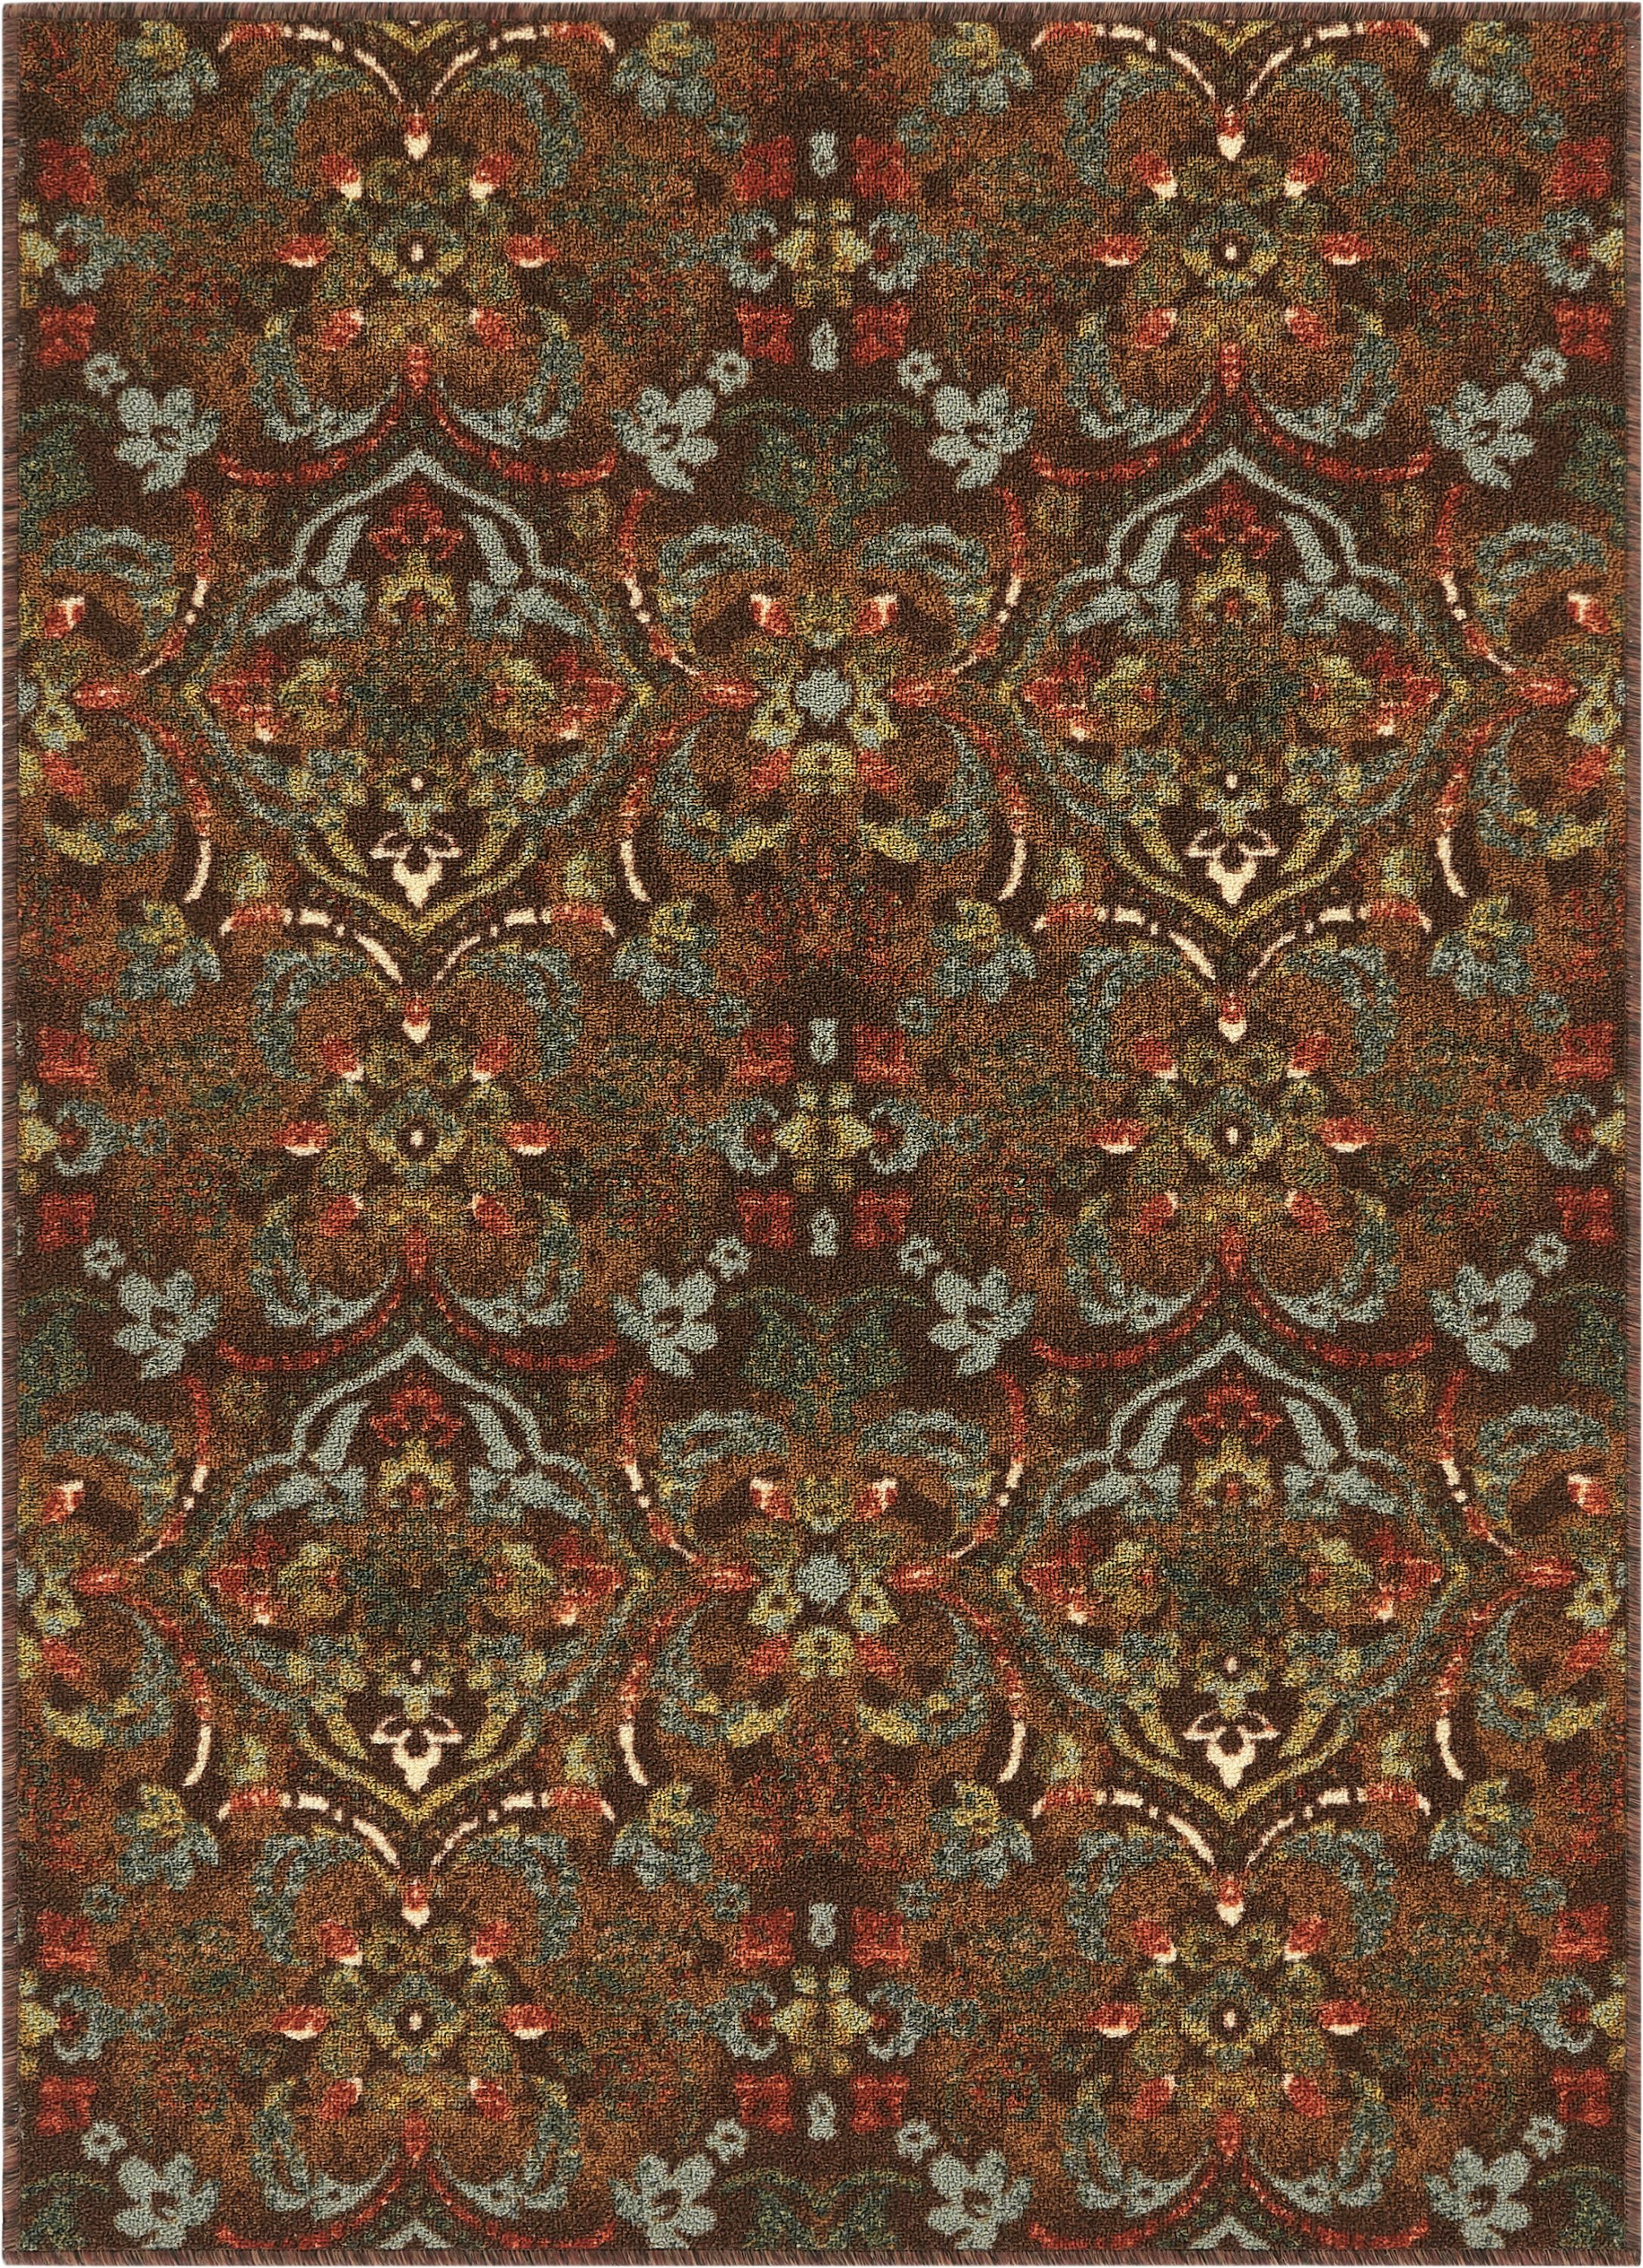 Josephine Traditional Floral Brown Area Rug Rug Size: Rectangle 5' x 7'